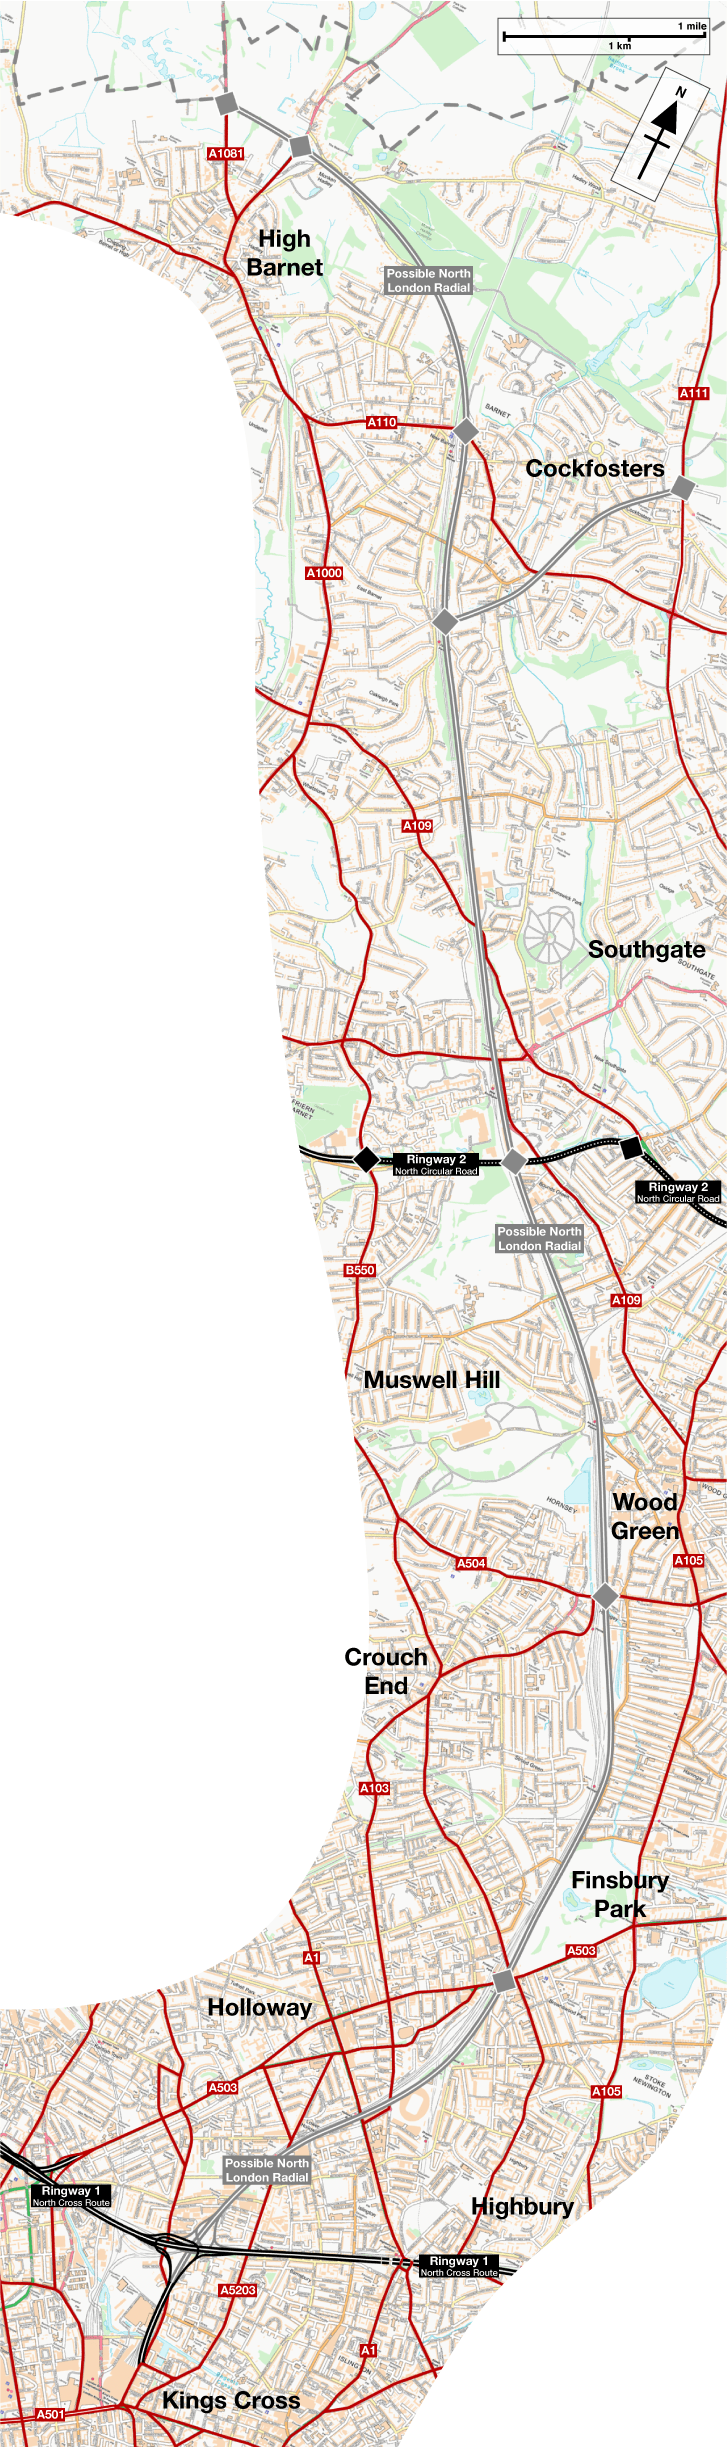 Map of the Possible North London Radial